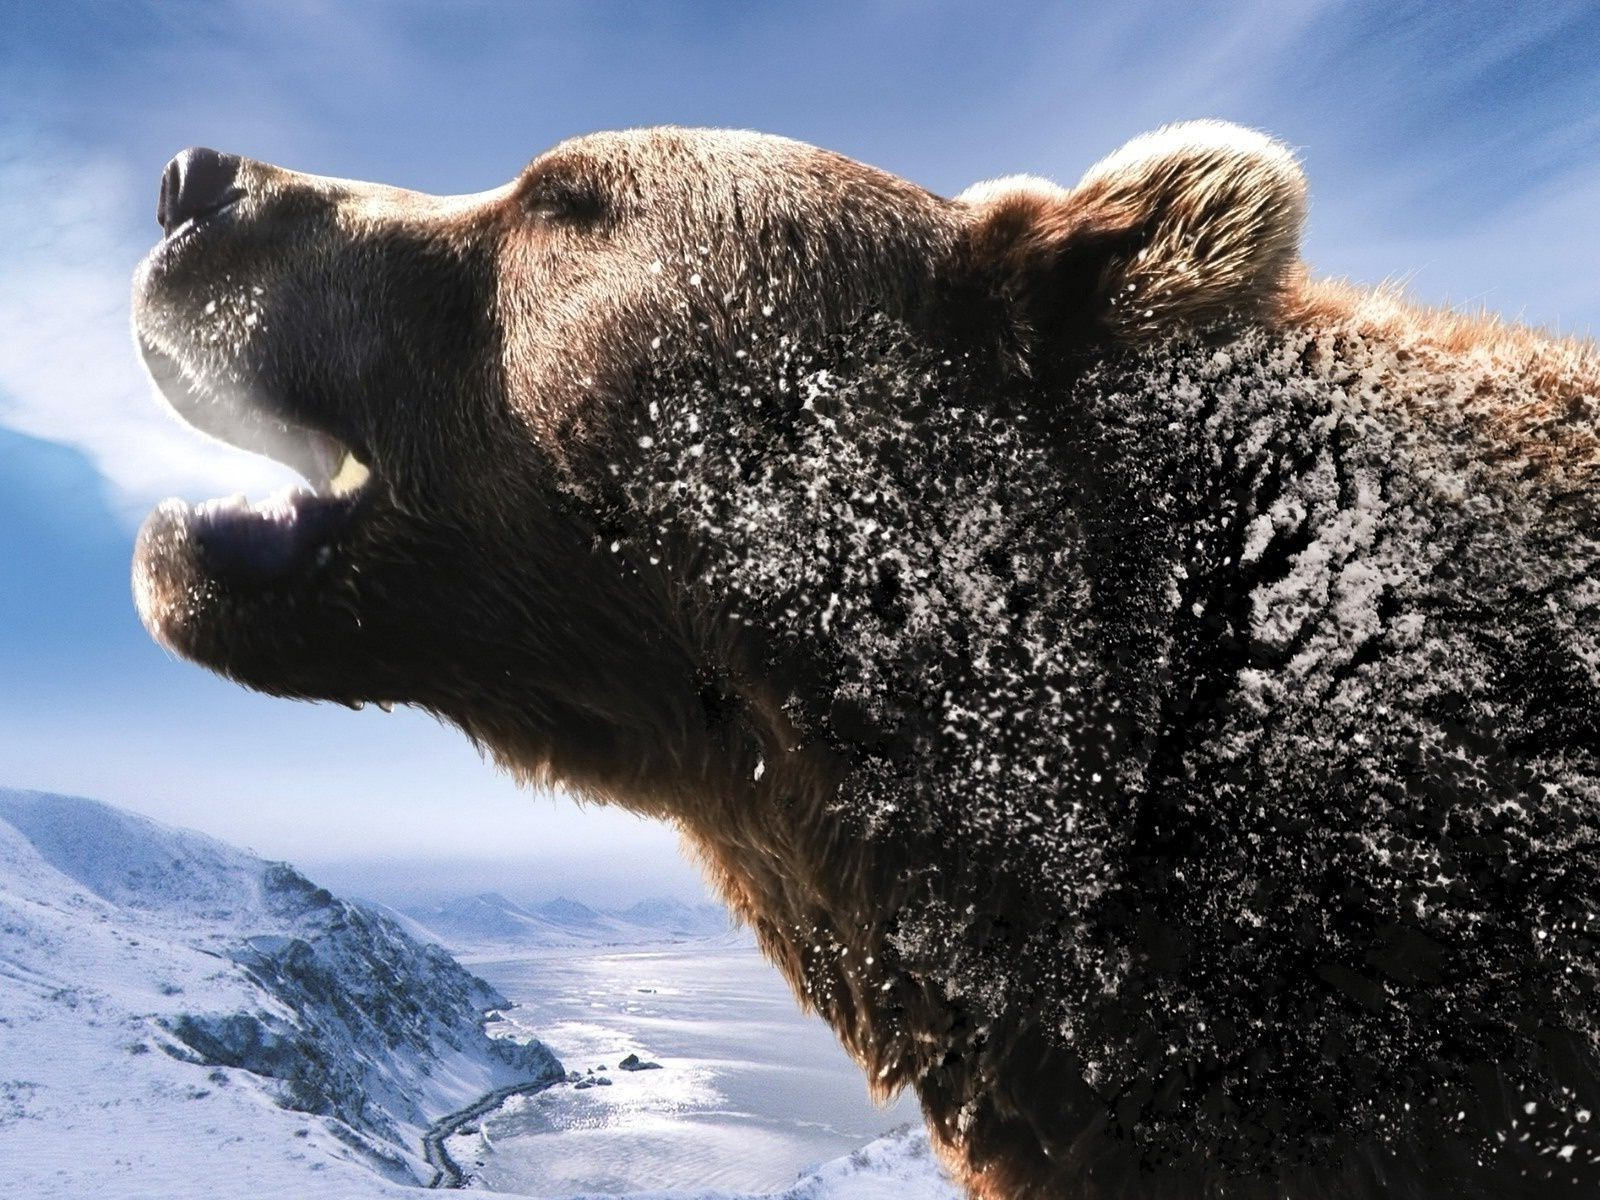 bears snow winter outdoors mammal nature cold wildlife water frosty one ice